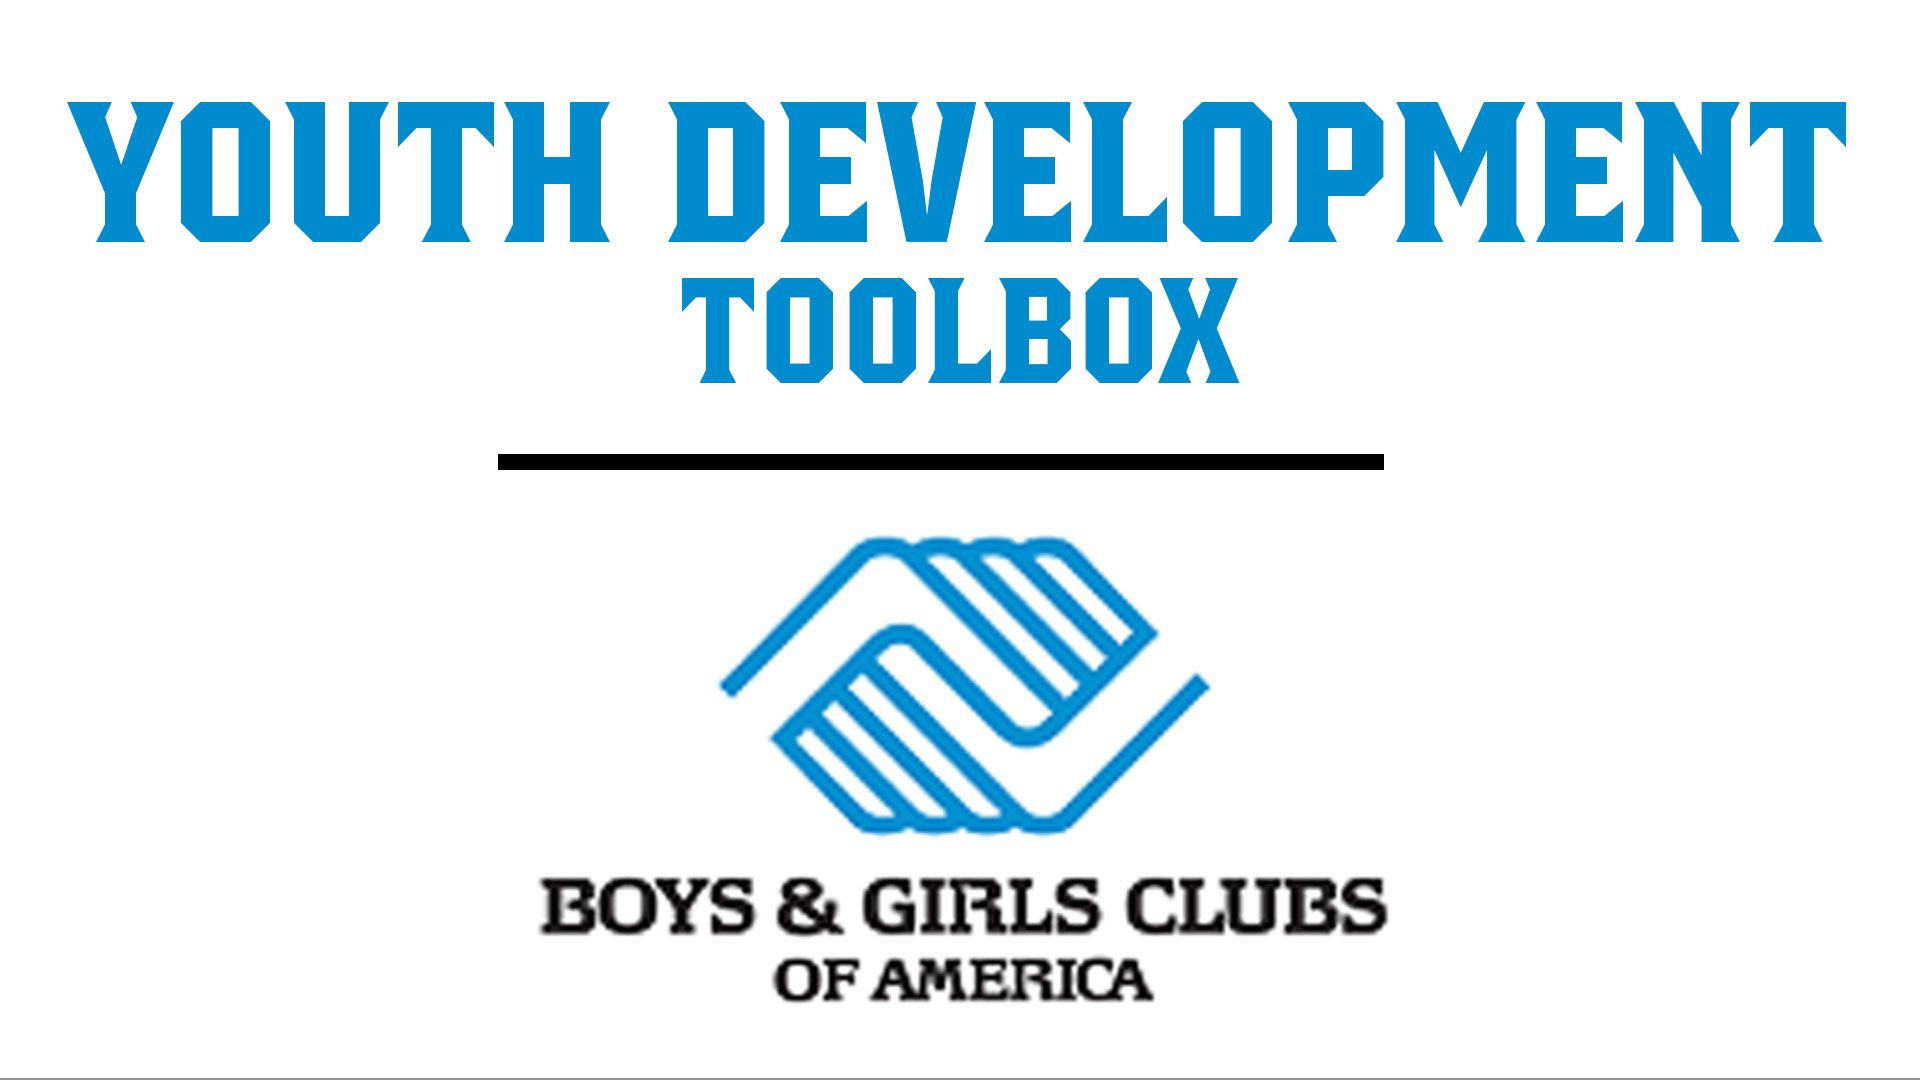 Youth Development Toolbox